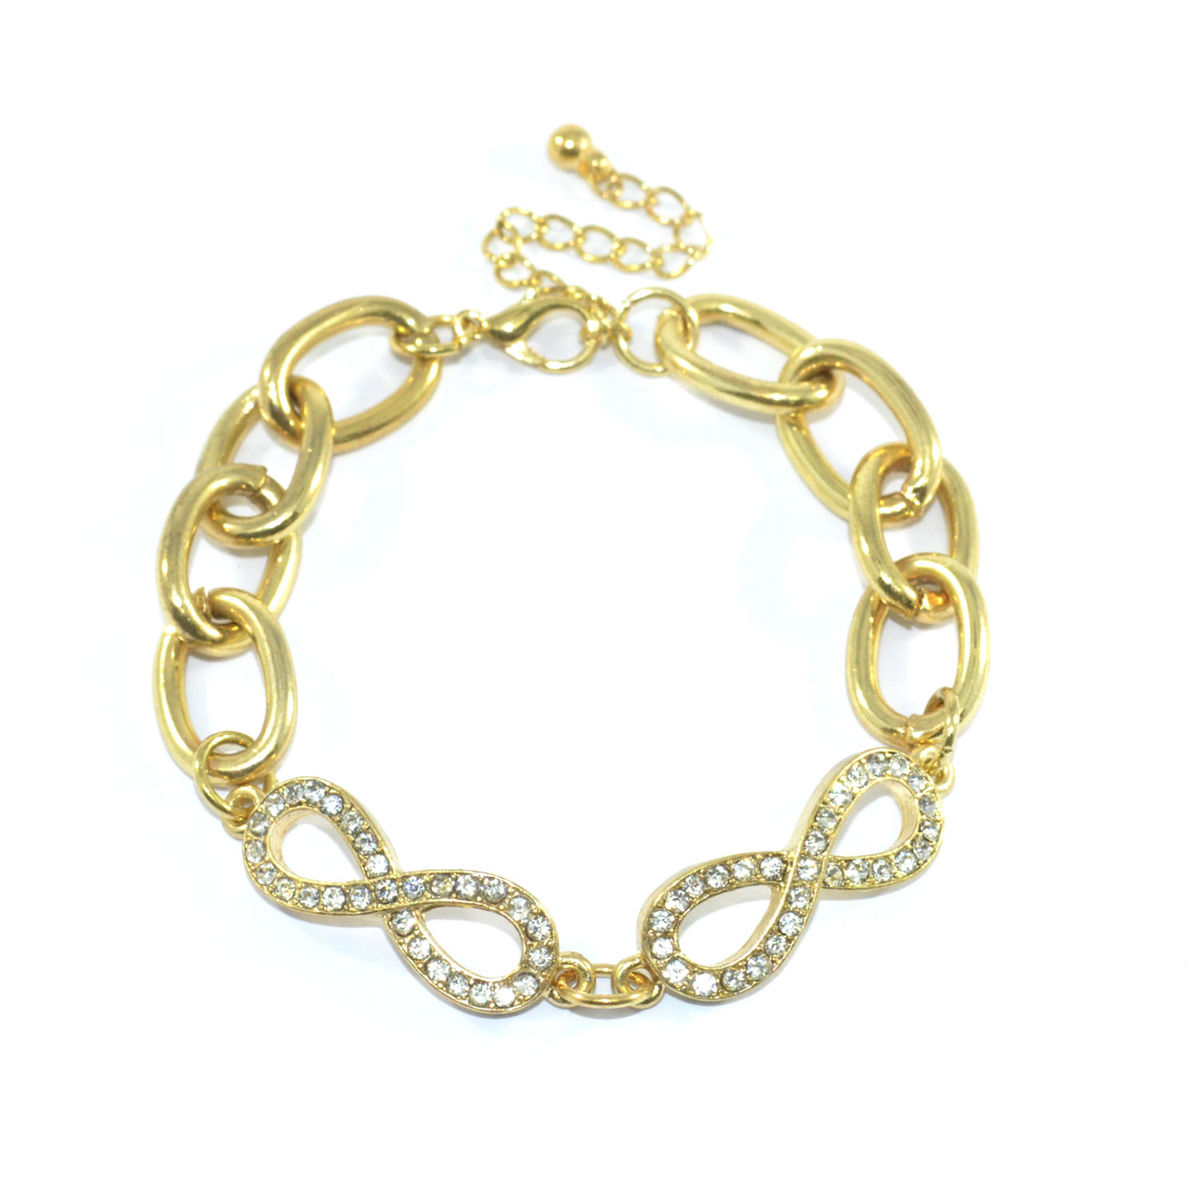 DOUBLE INFINITY CHARM BRACELET - Rings & Tings | Online fashion store | Shop the latest trends